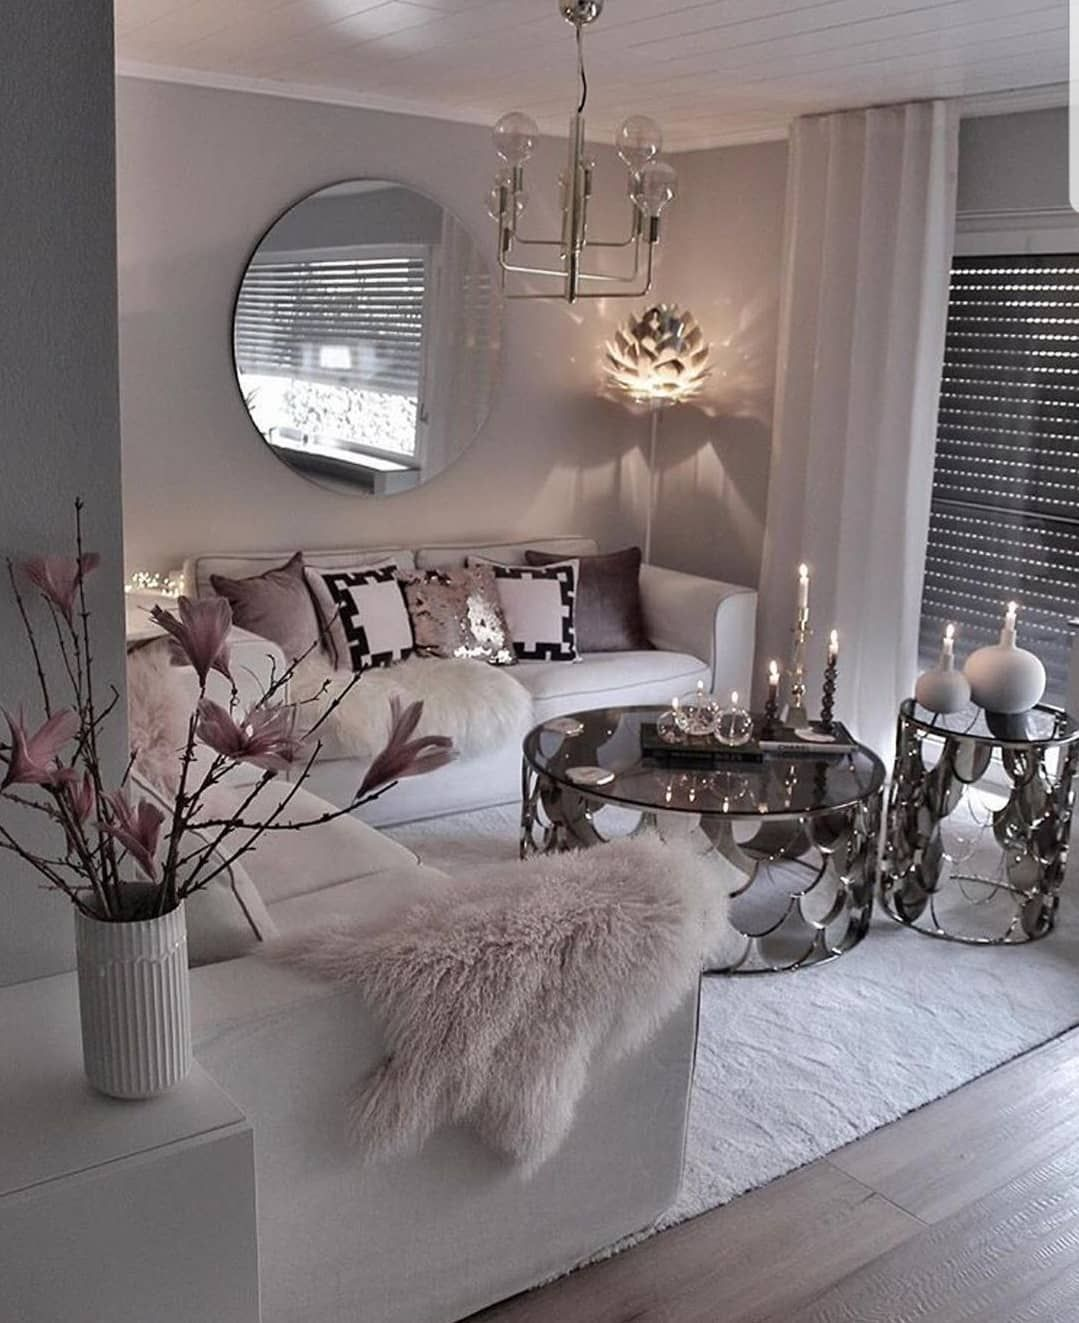 Top 70 Home Design Trends In 2020 In 2020 Living Room Decor Modern Apartment Living Room Design Living Room Decor Apartment